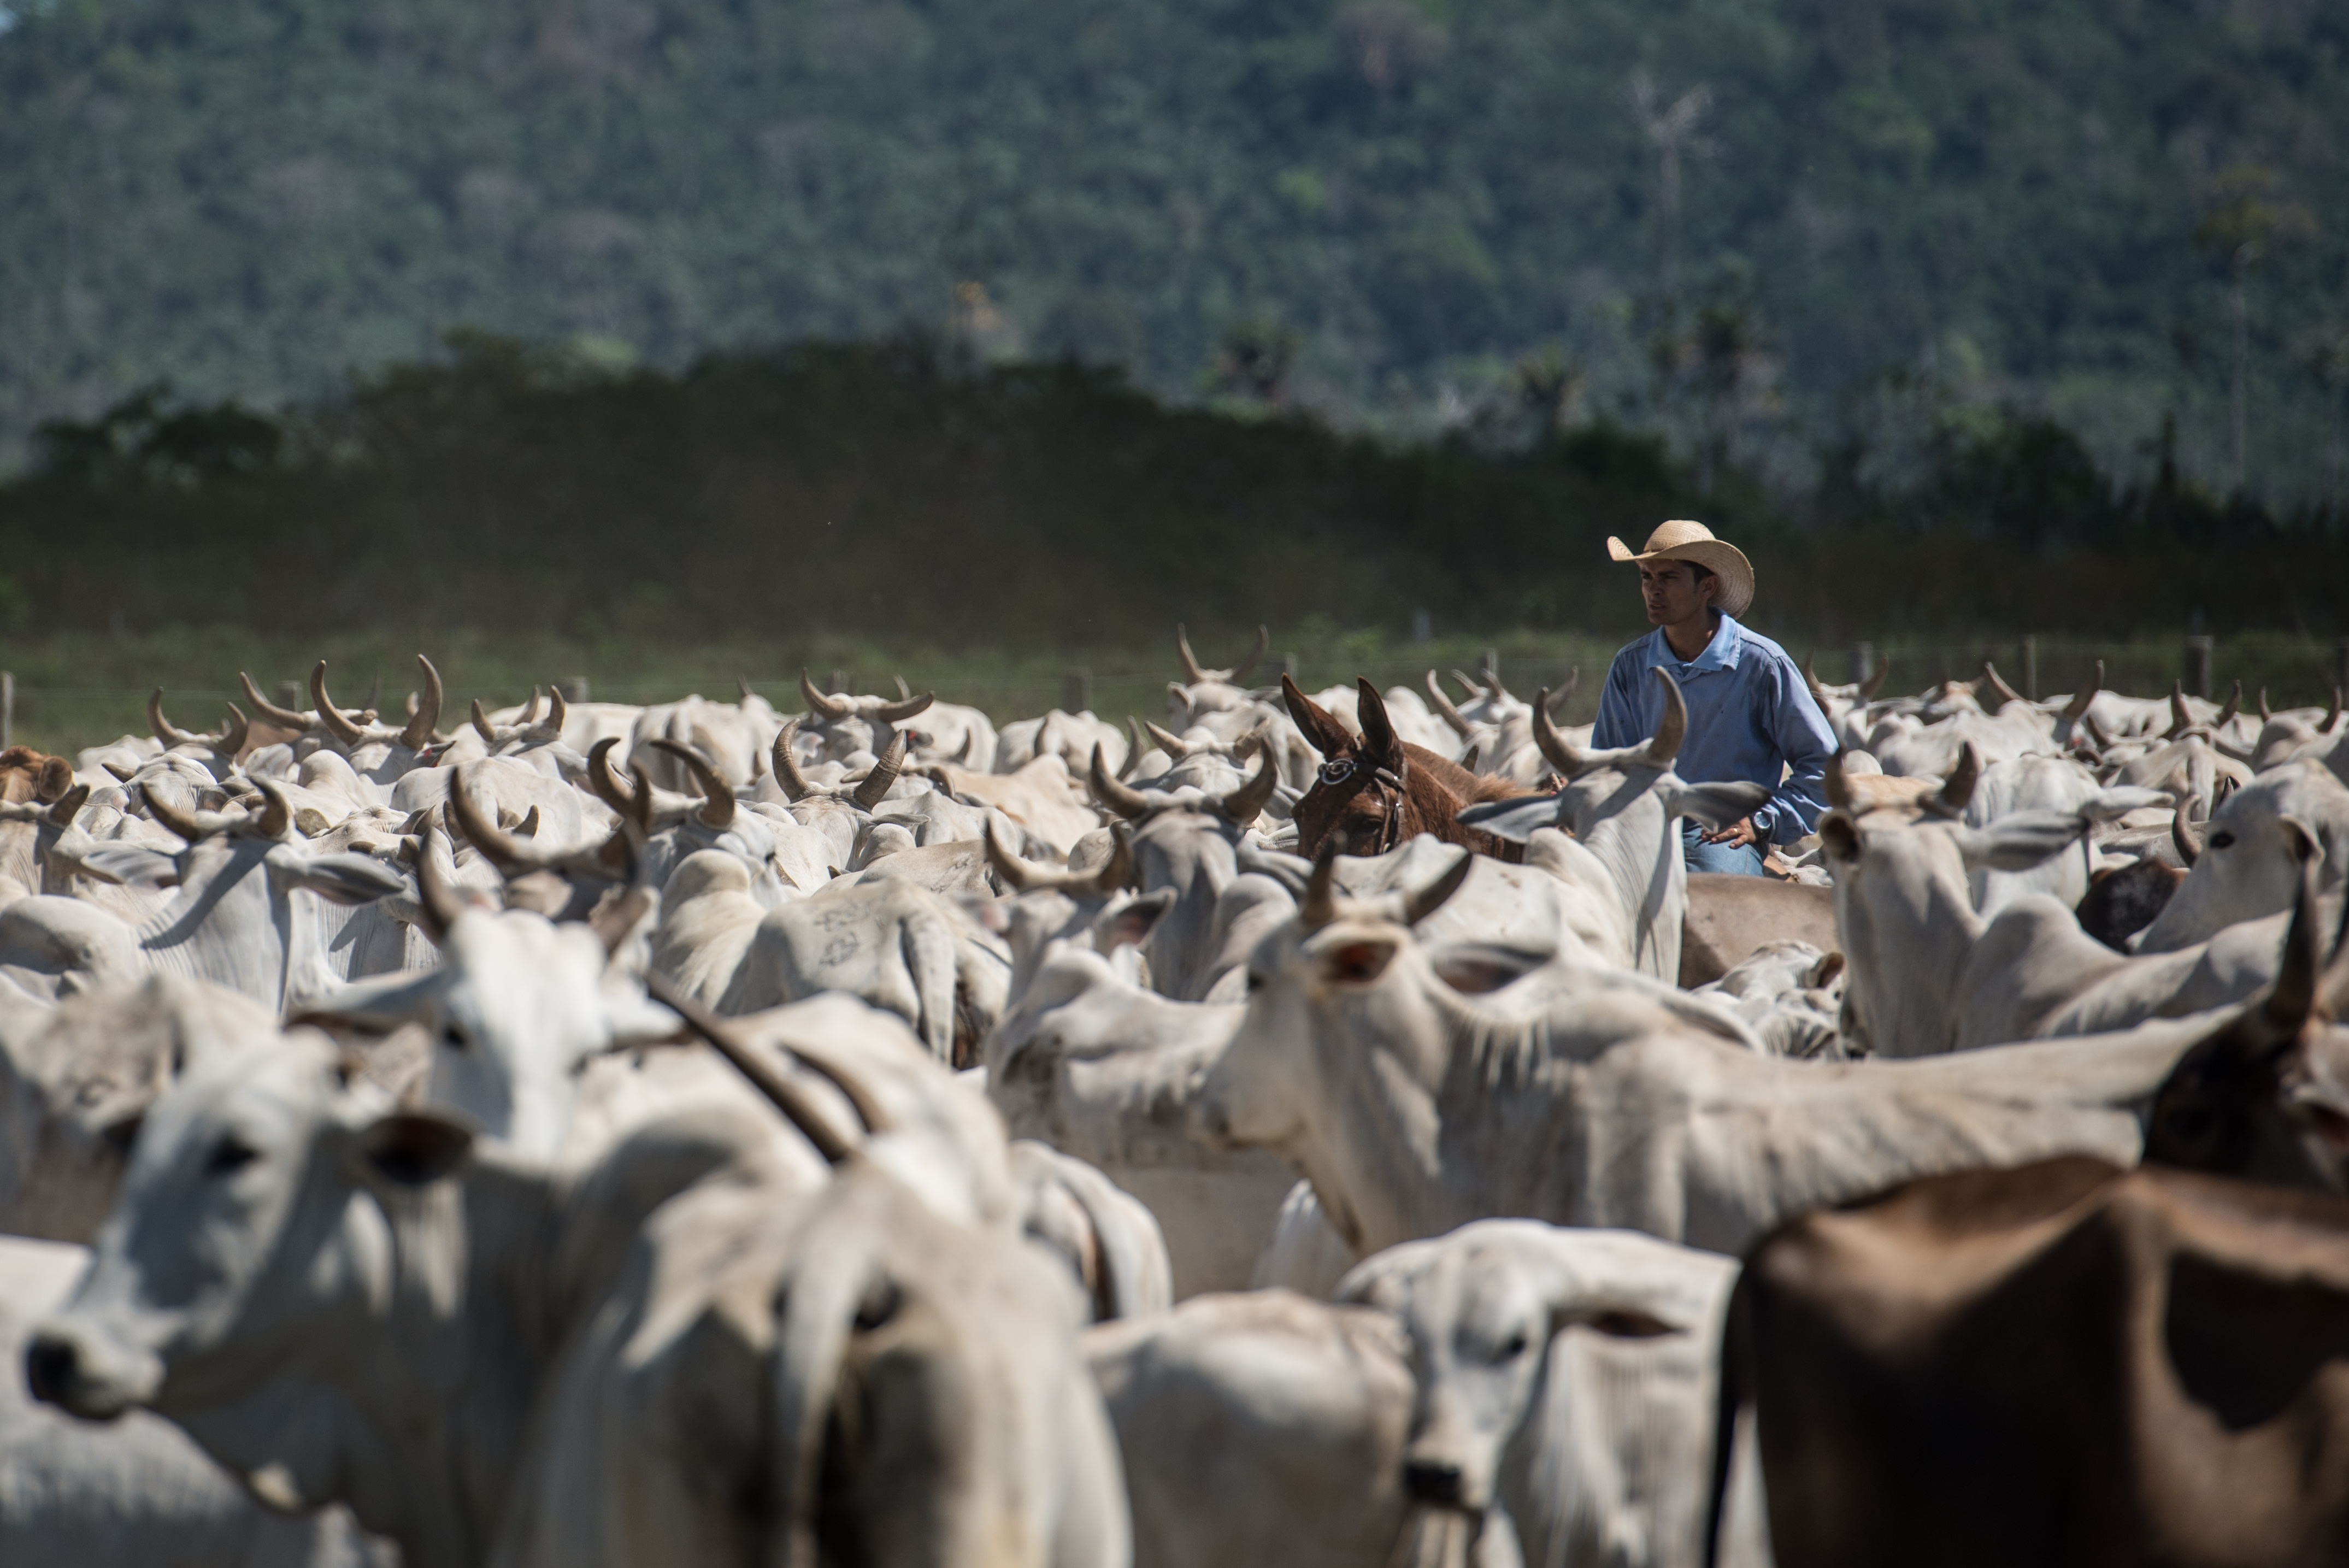 A cowboy drives cattle at a farm in Sao Felix do Xingu, Para state, northern Brazil, on Aug. 8, 2013. (Yasuyoshi Chiba/AFP/Getty Images)